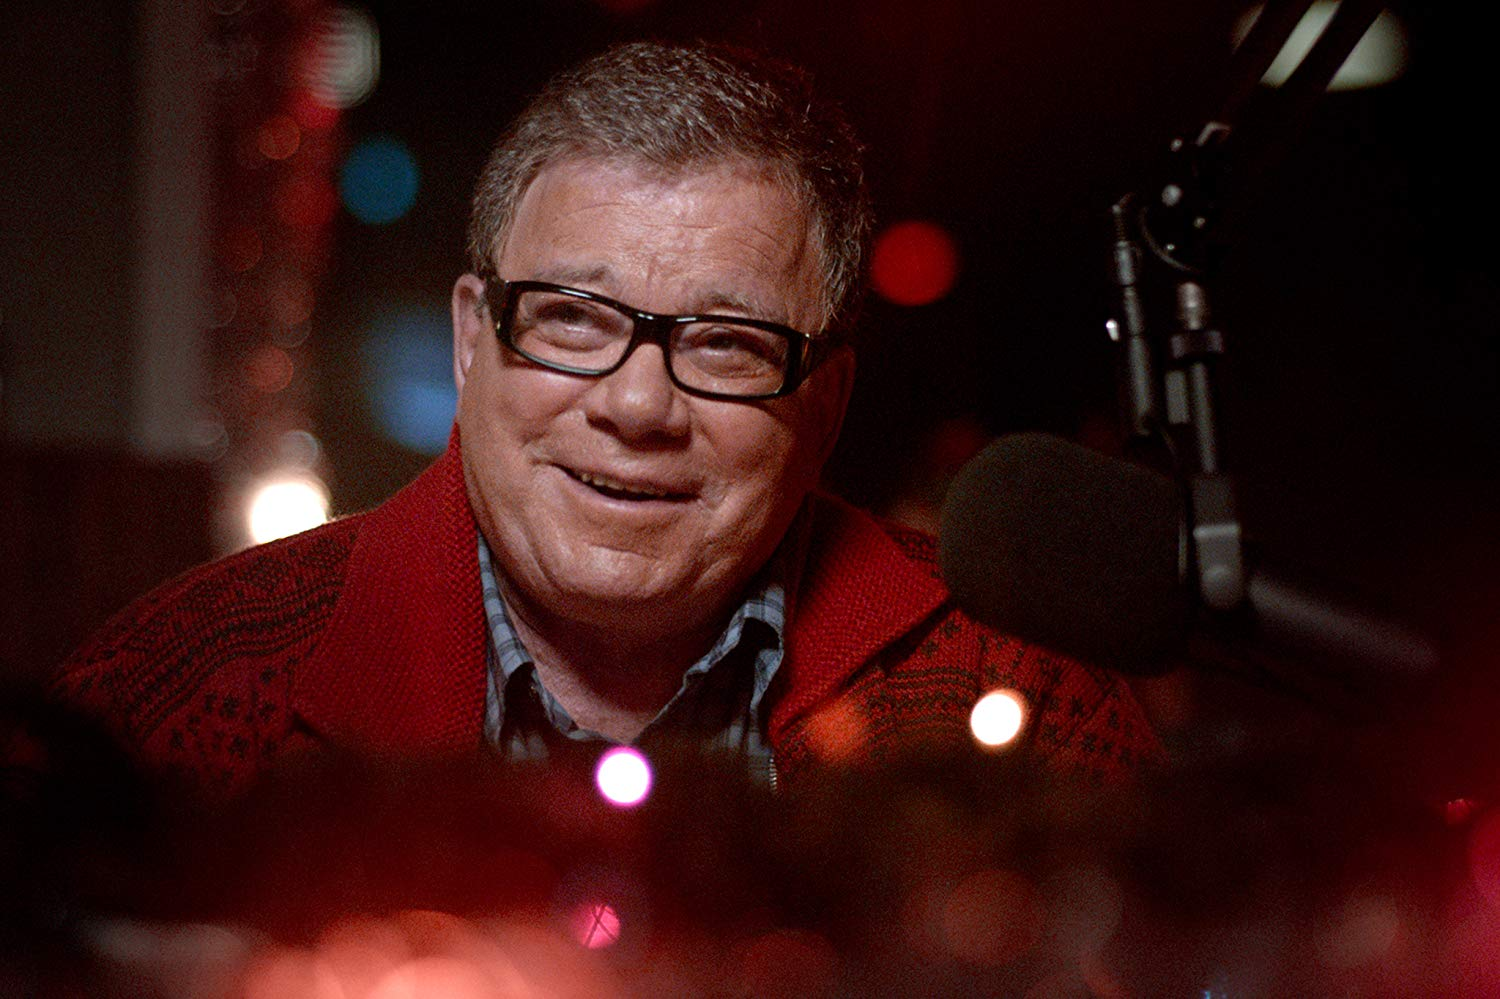 William Shatner as radio dj Dangerous Dan in A Christmas Horror Story (2015) poster